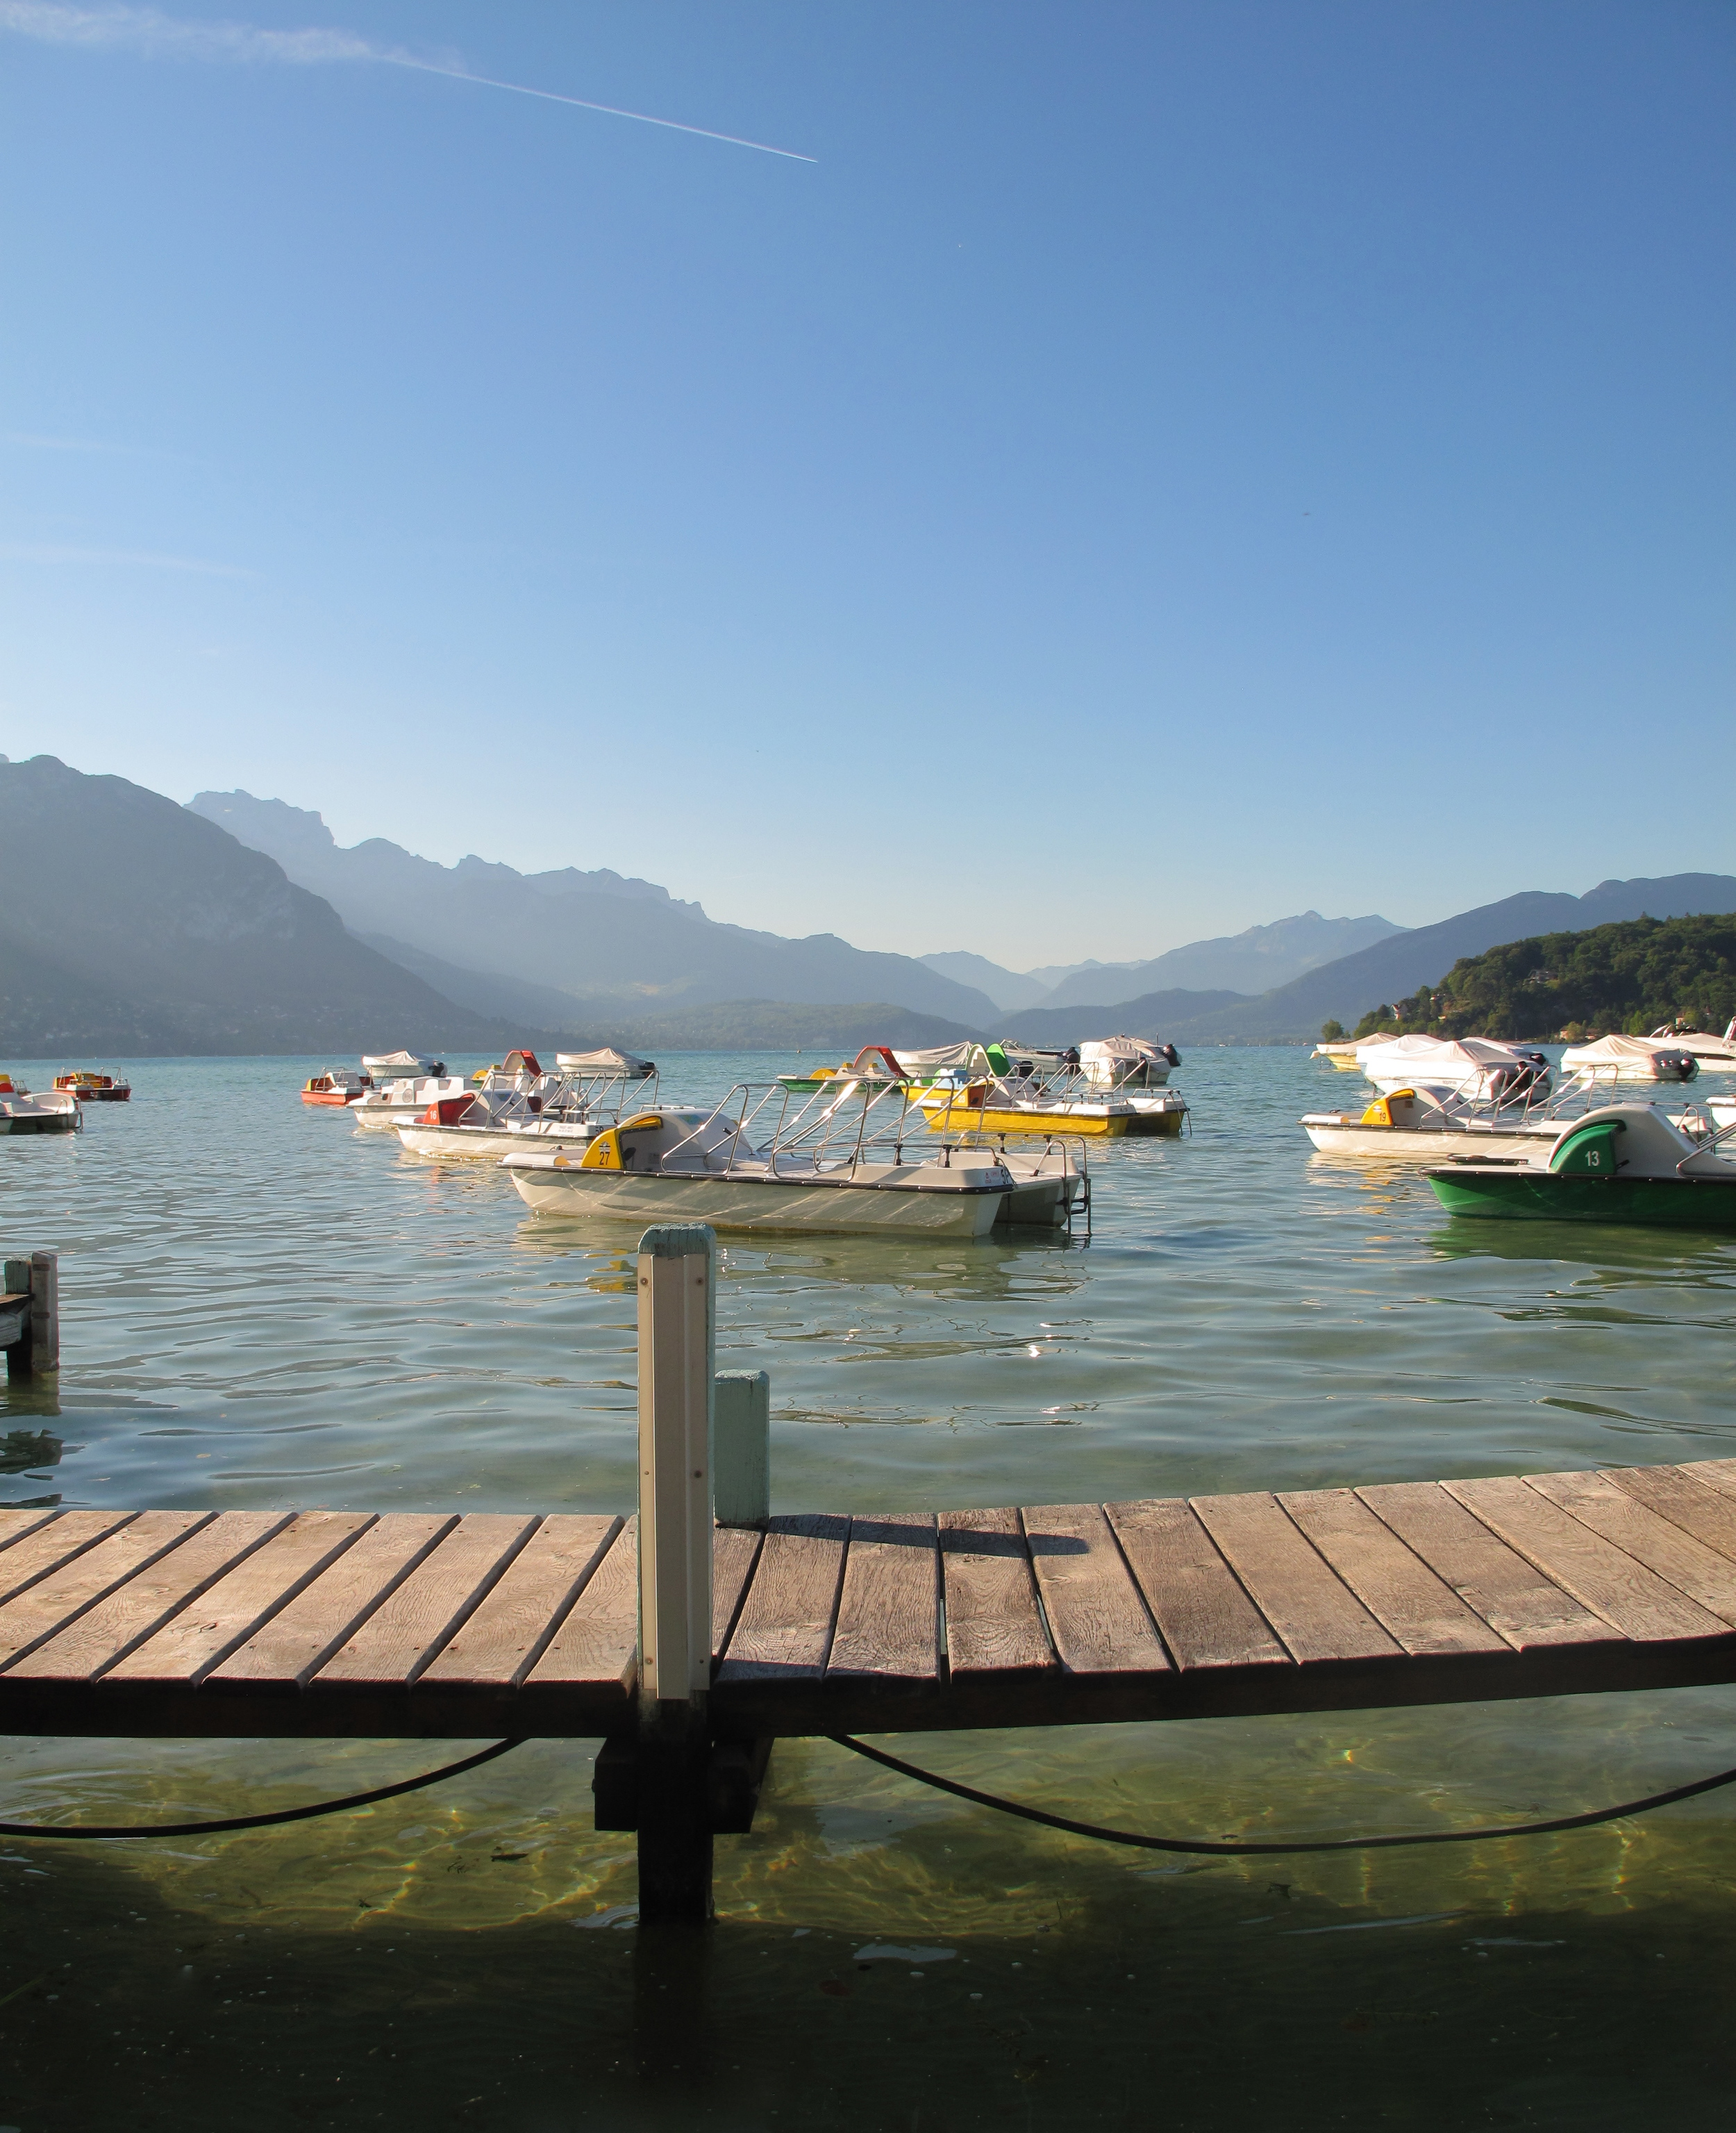 Boats on Lake Annecy in the summer - the water is completely clear and turquoise coloured